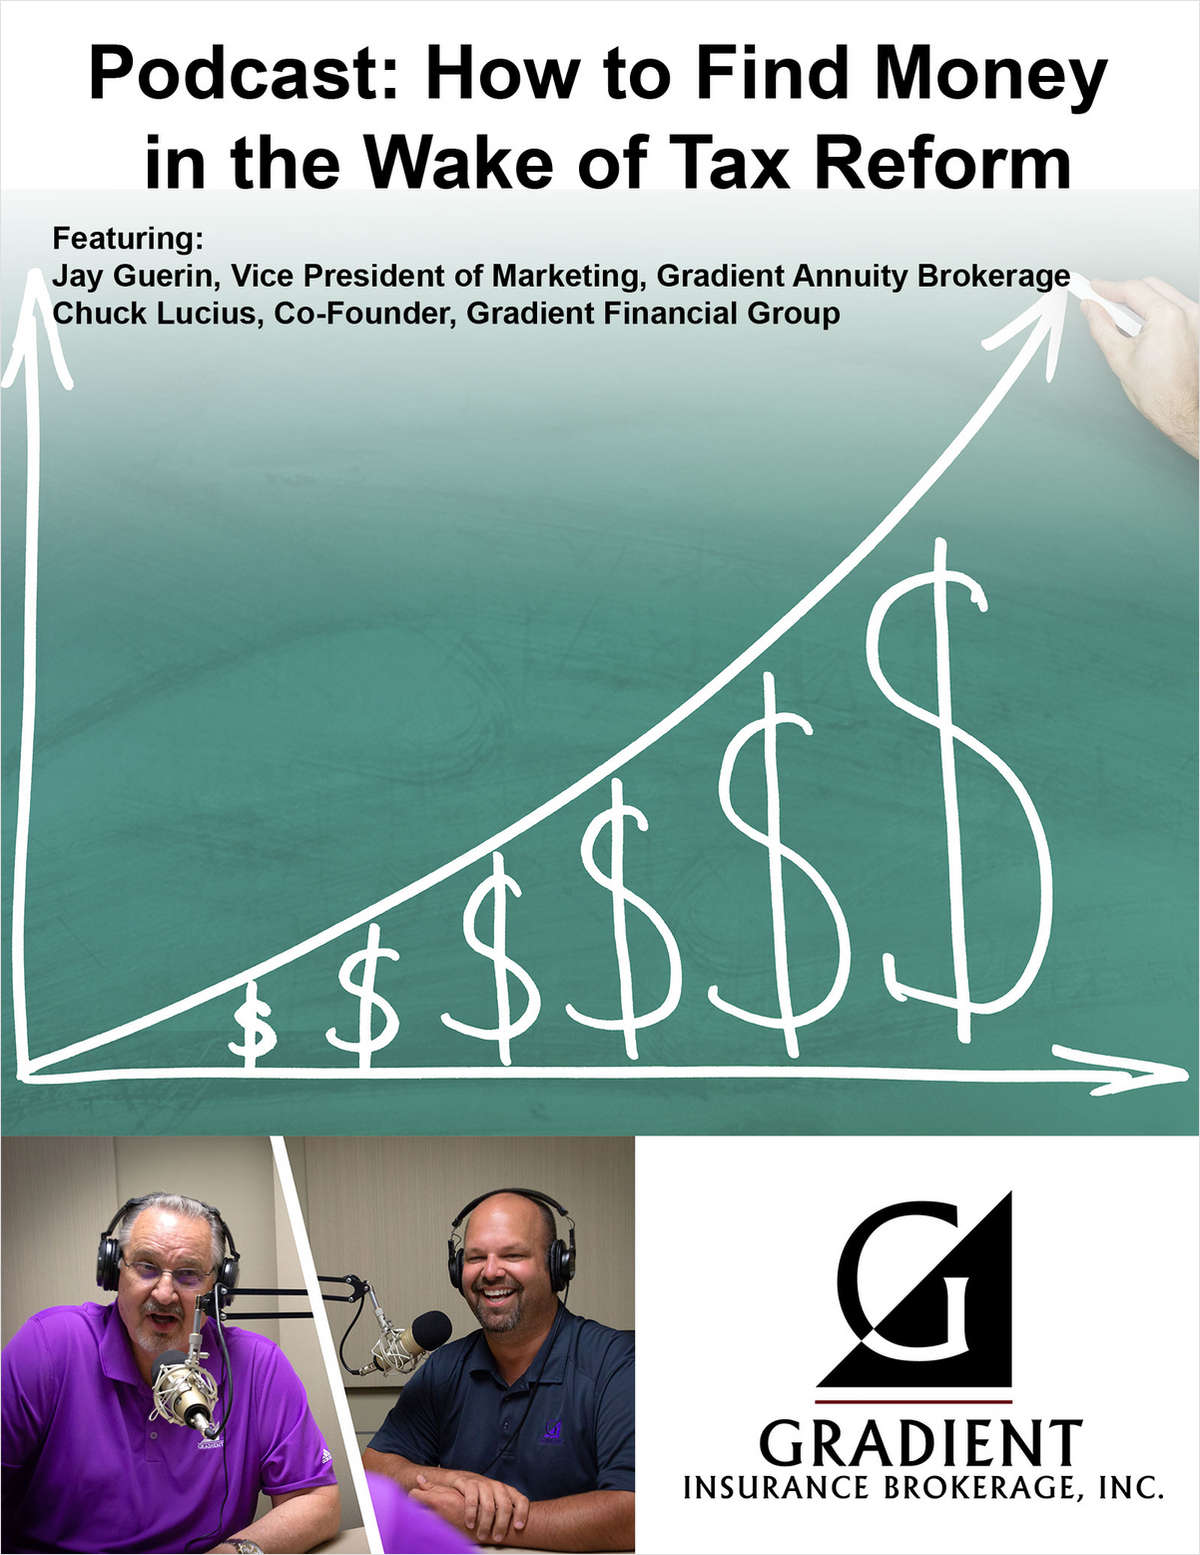 Podcast: How to Find Money in the Wake of Tax Reform